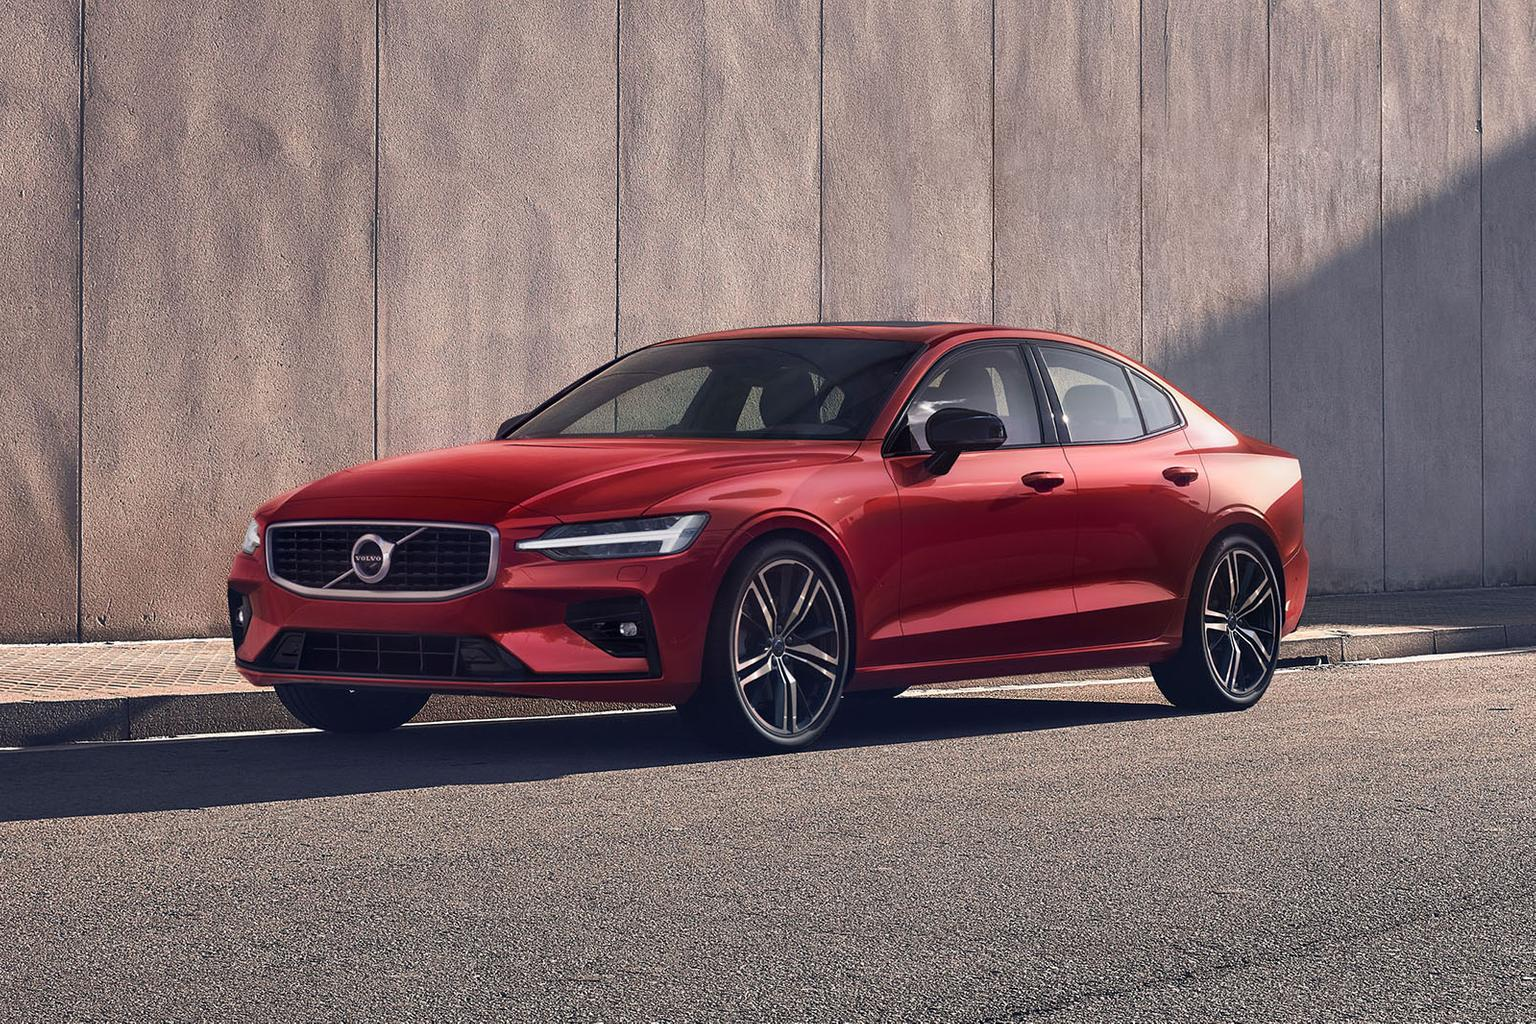 2019 Volvo S60 – price, specs and release date